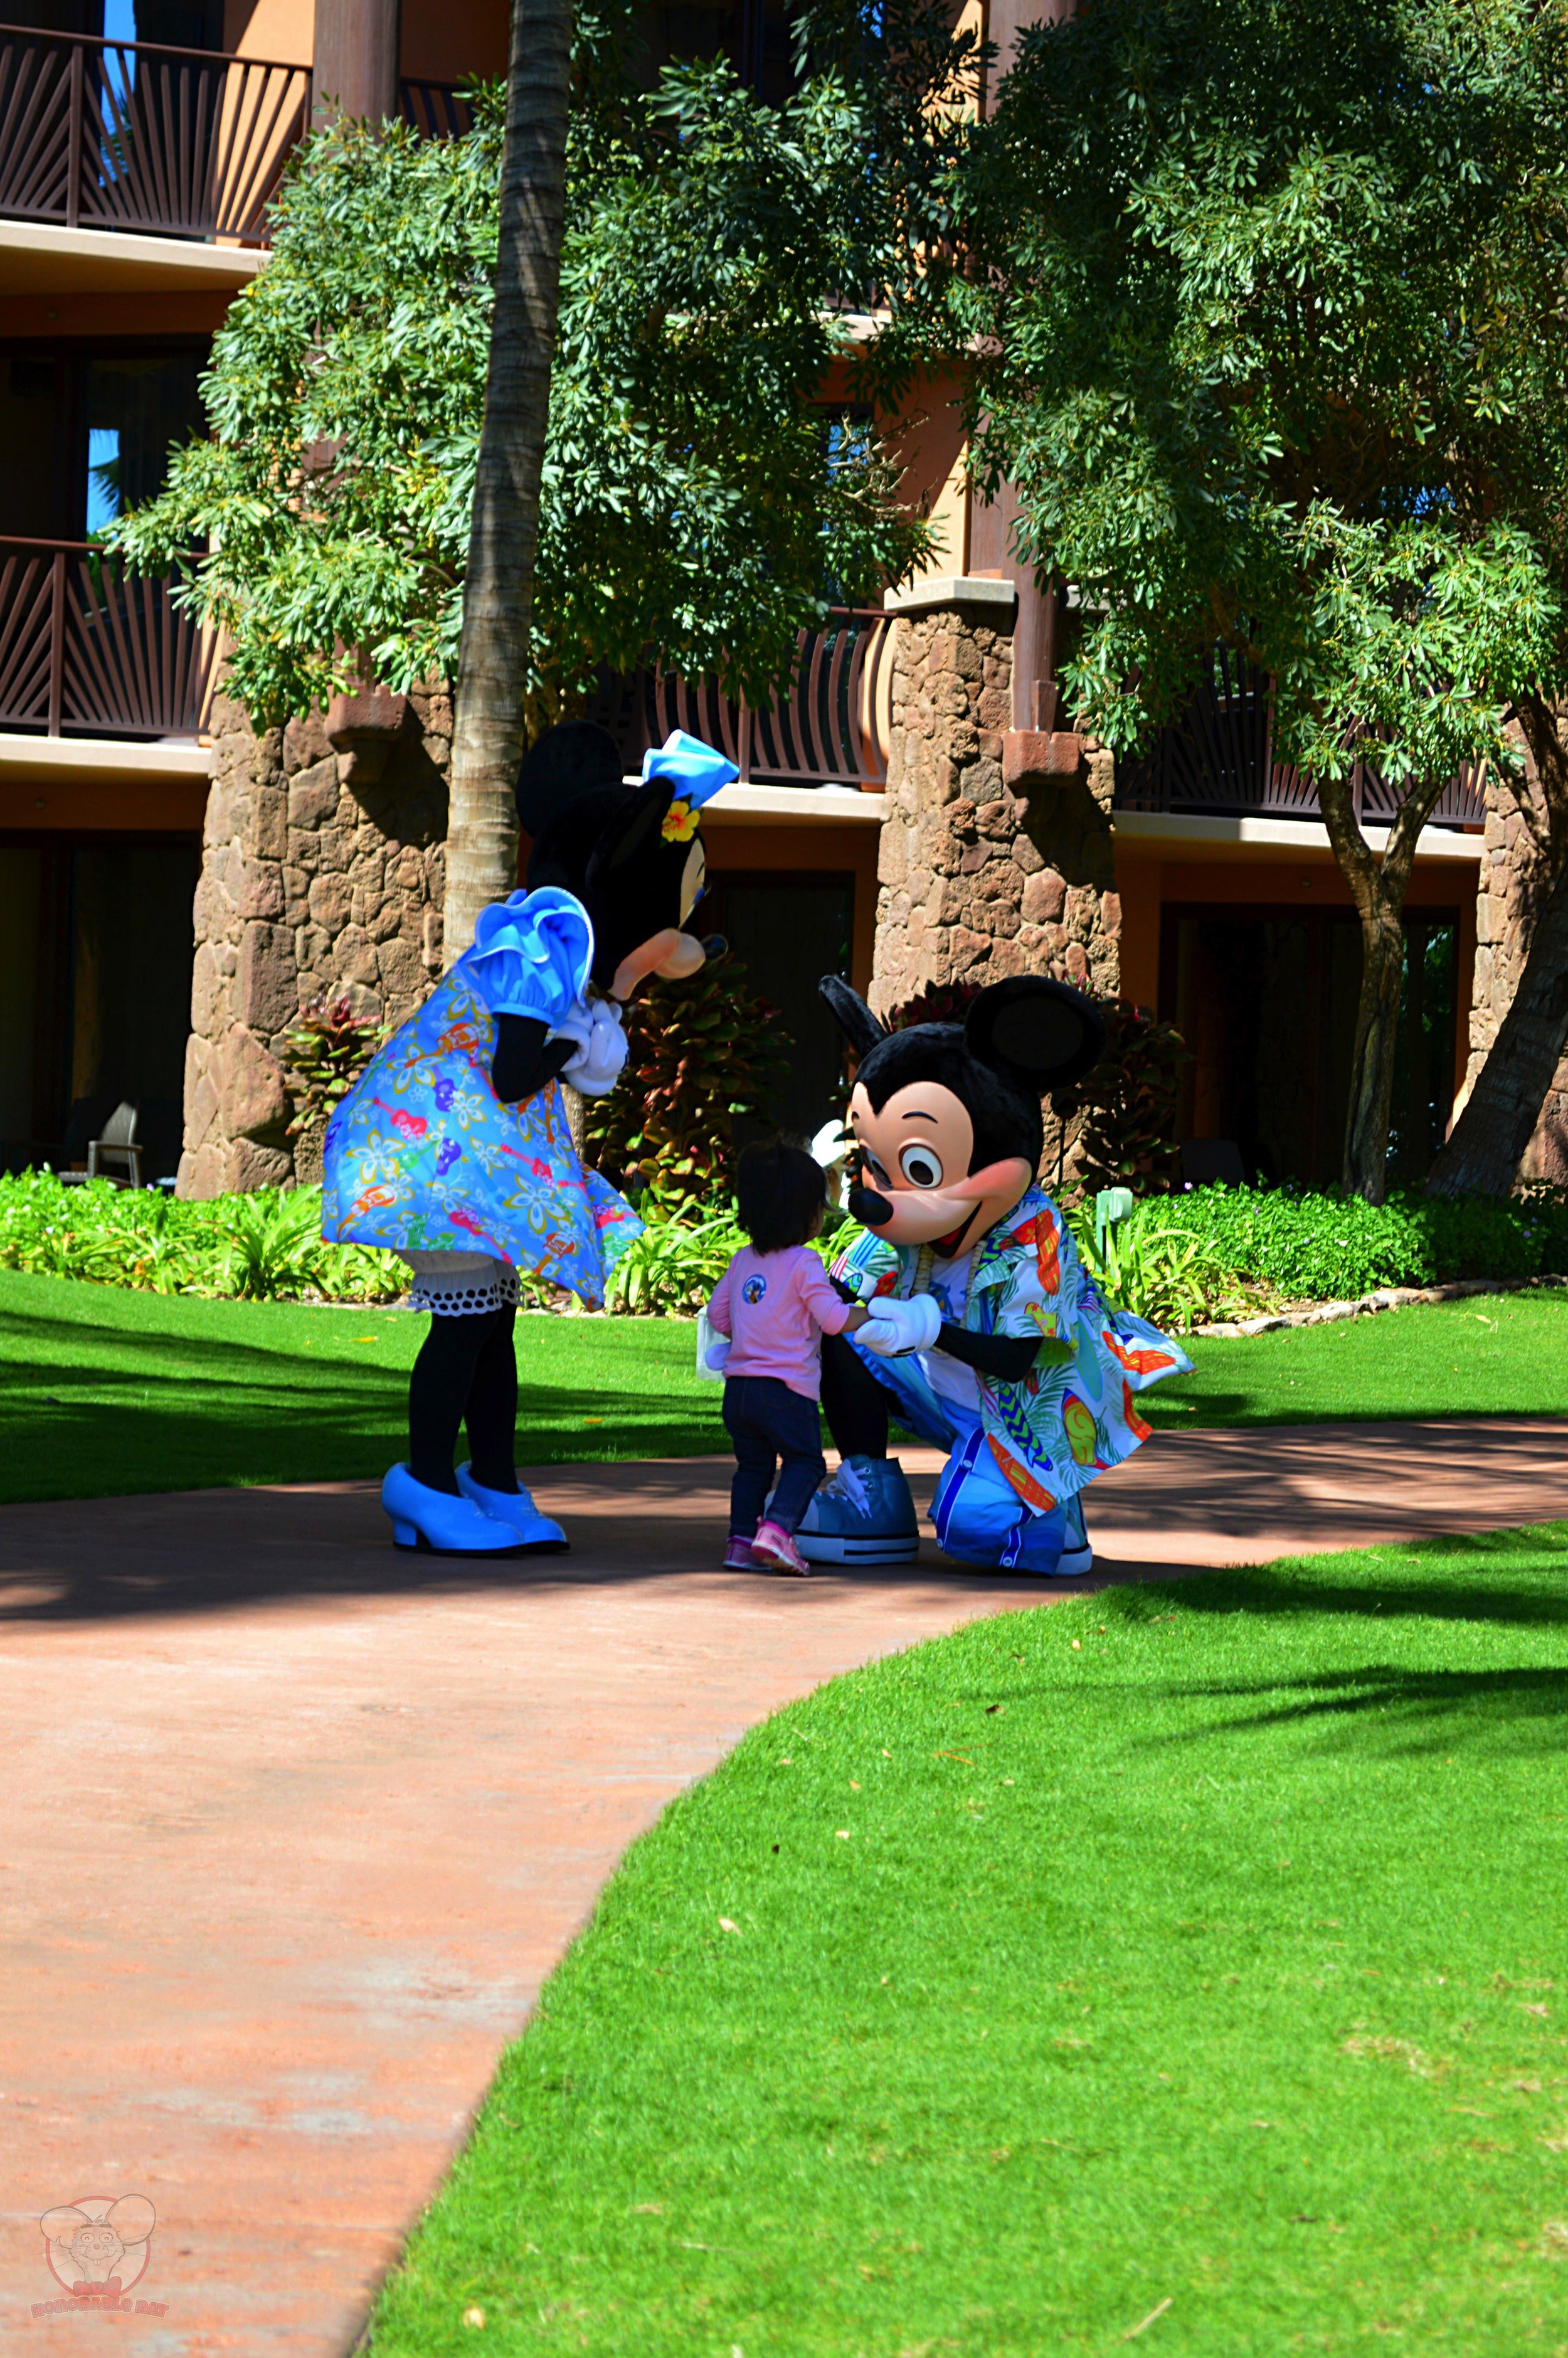 Telling Mickey that she will be back